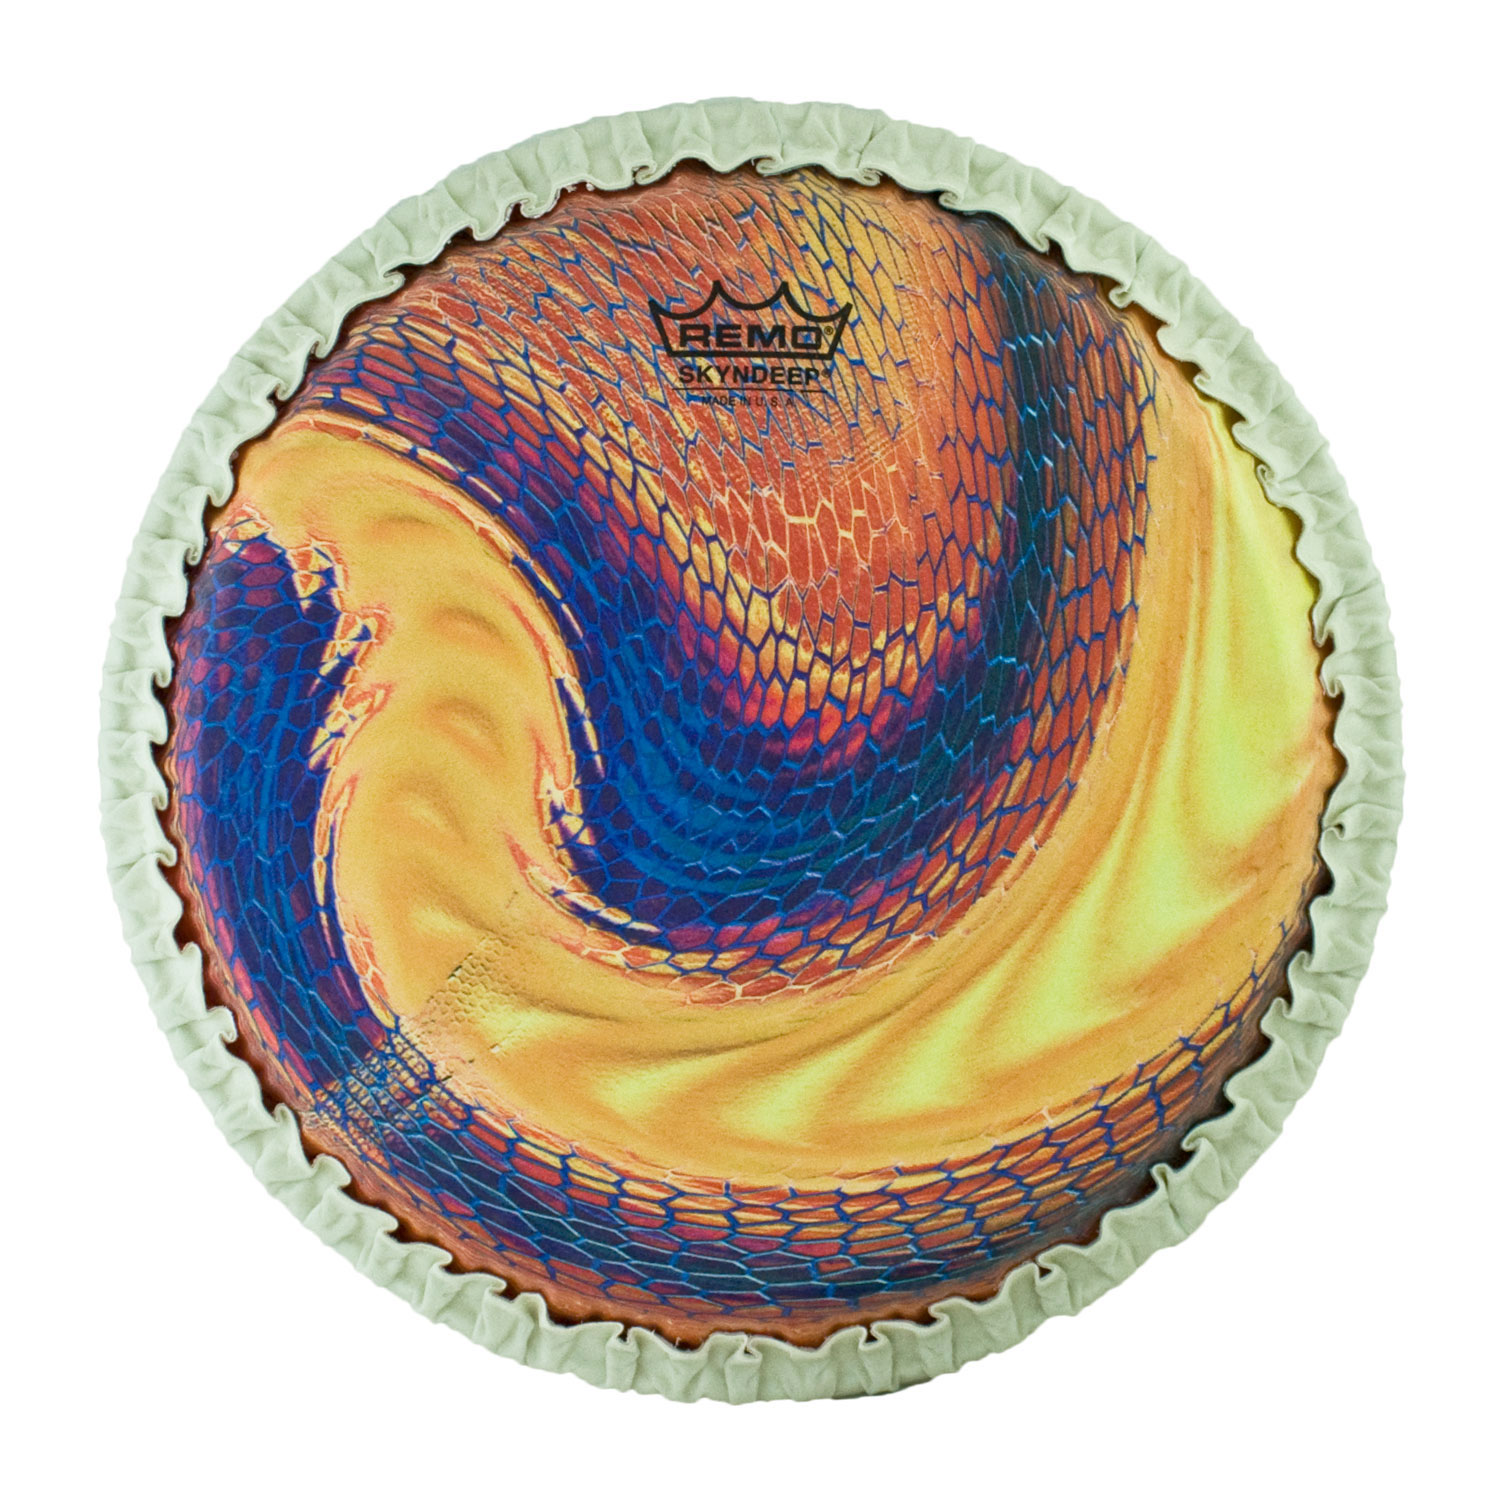 "Remo 11.75"" Tucked Skyndeep Conga Drum Head with Serpentine Day Graphic"